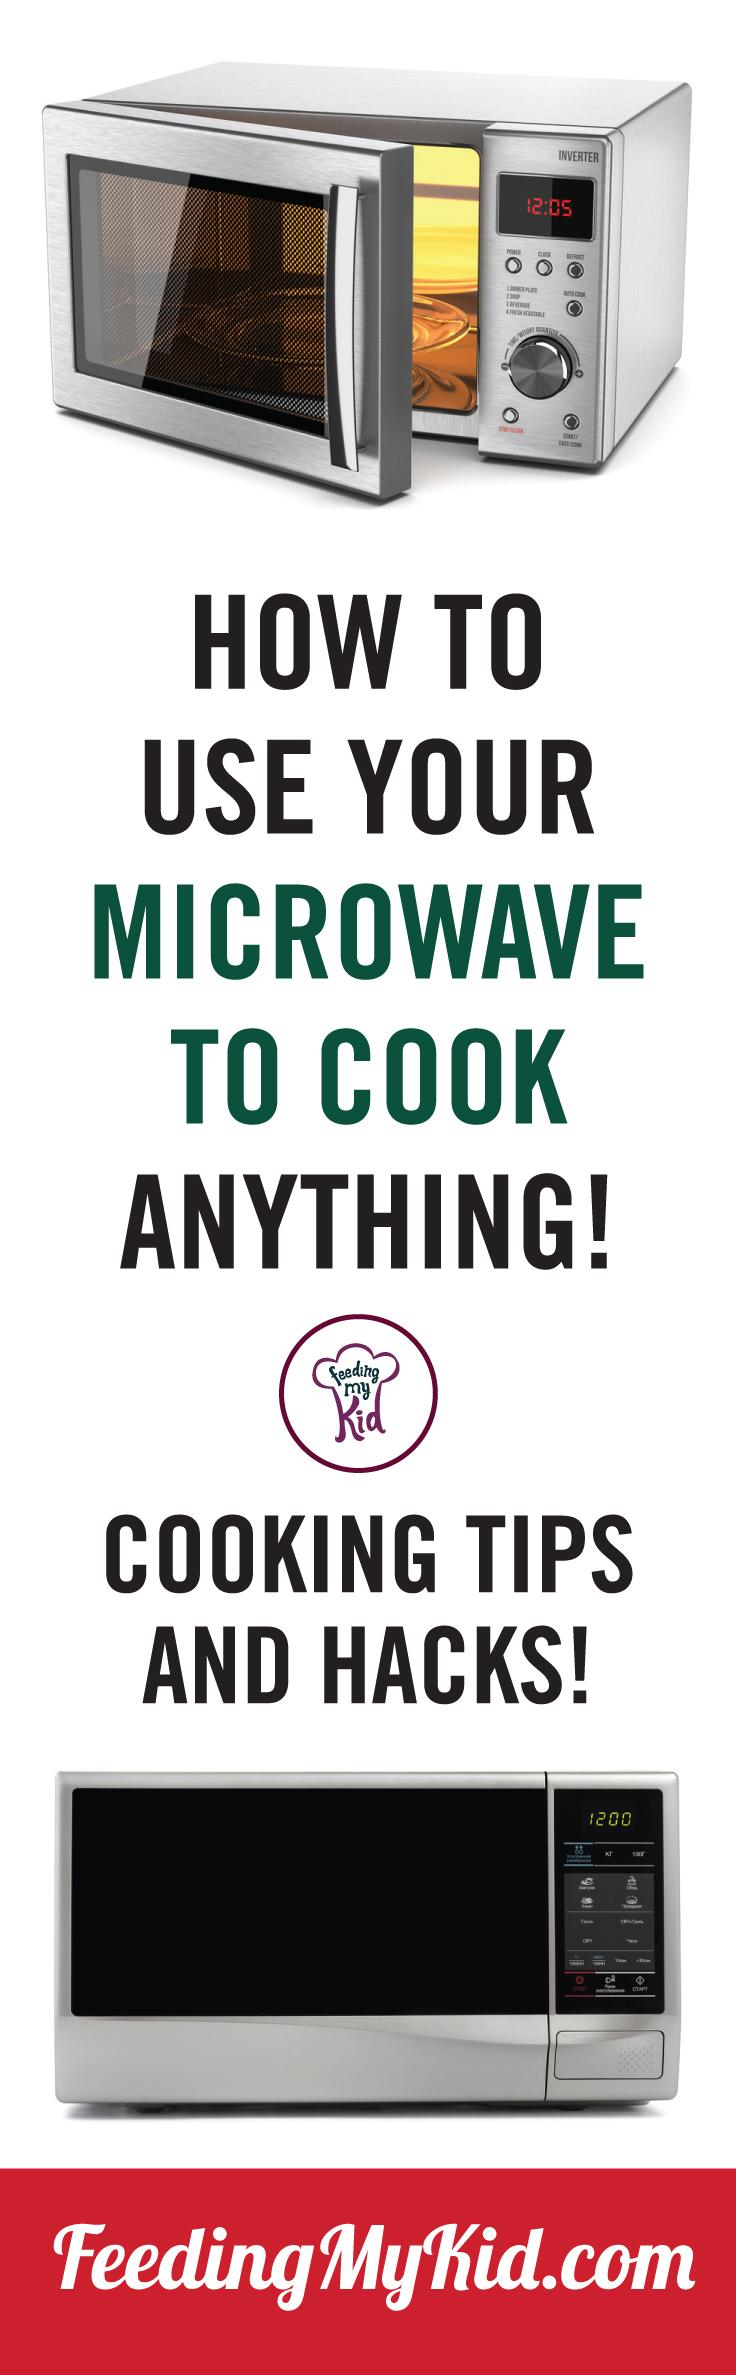 Check out these great videos on microwave cooking tips that will help you cook anything and everything in your microwave. Feeding My Kid is a filled with all the information you need about how to raise your kids, from healthy tips to nutritious recipes. #FeedingMyKid #microwave #microwavecooking #cookingtips